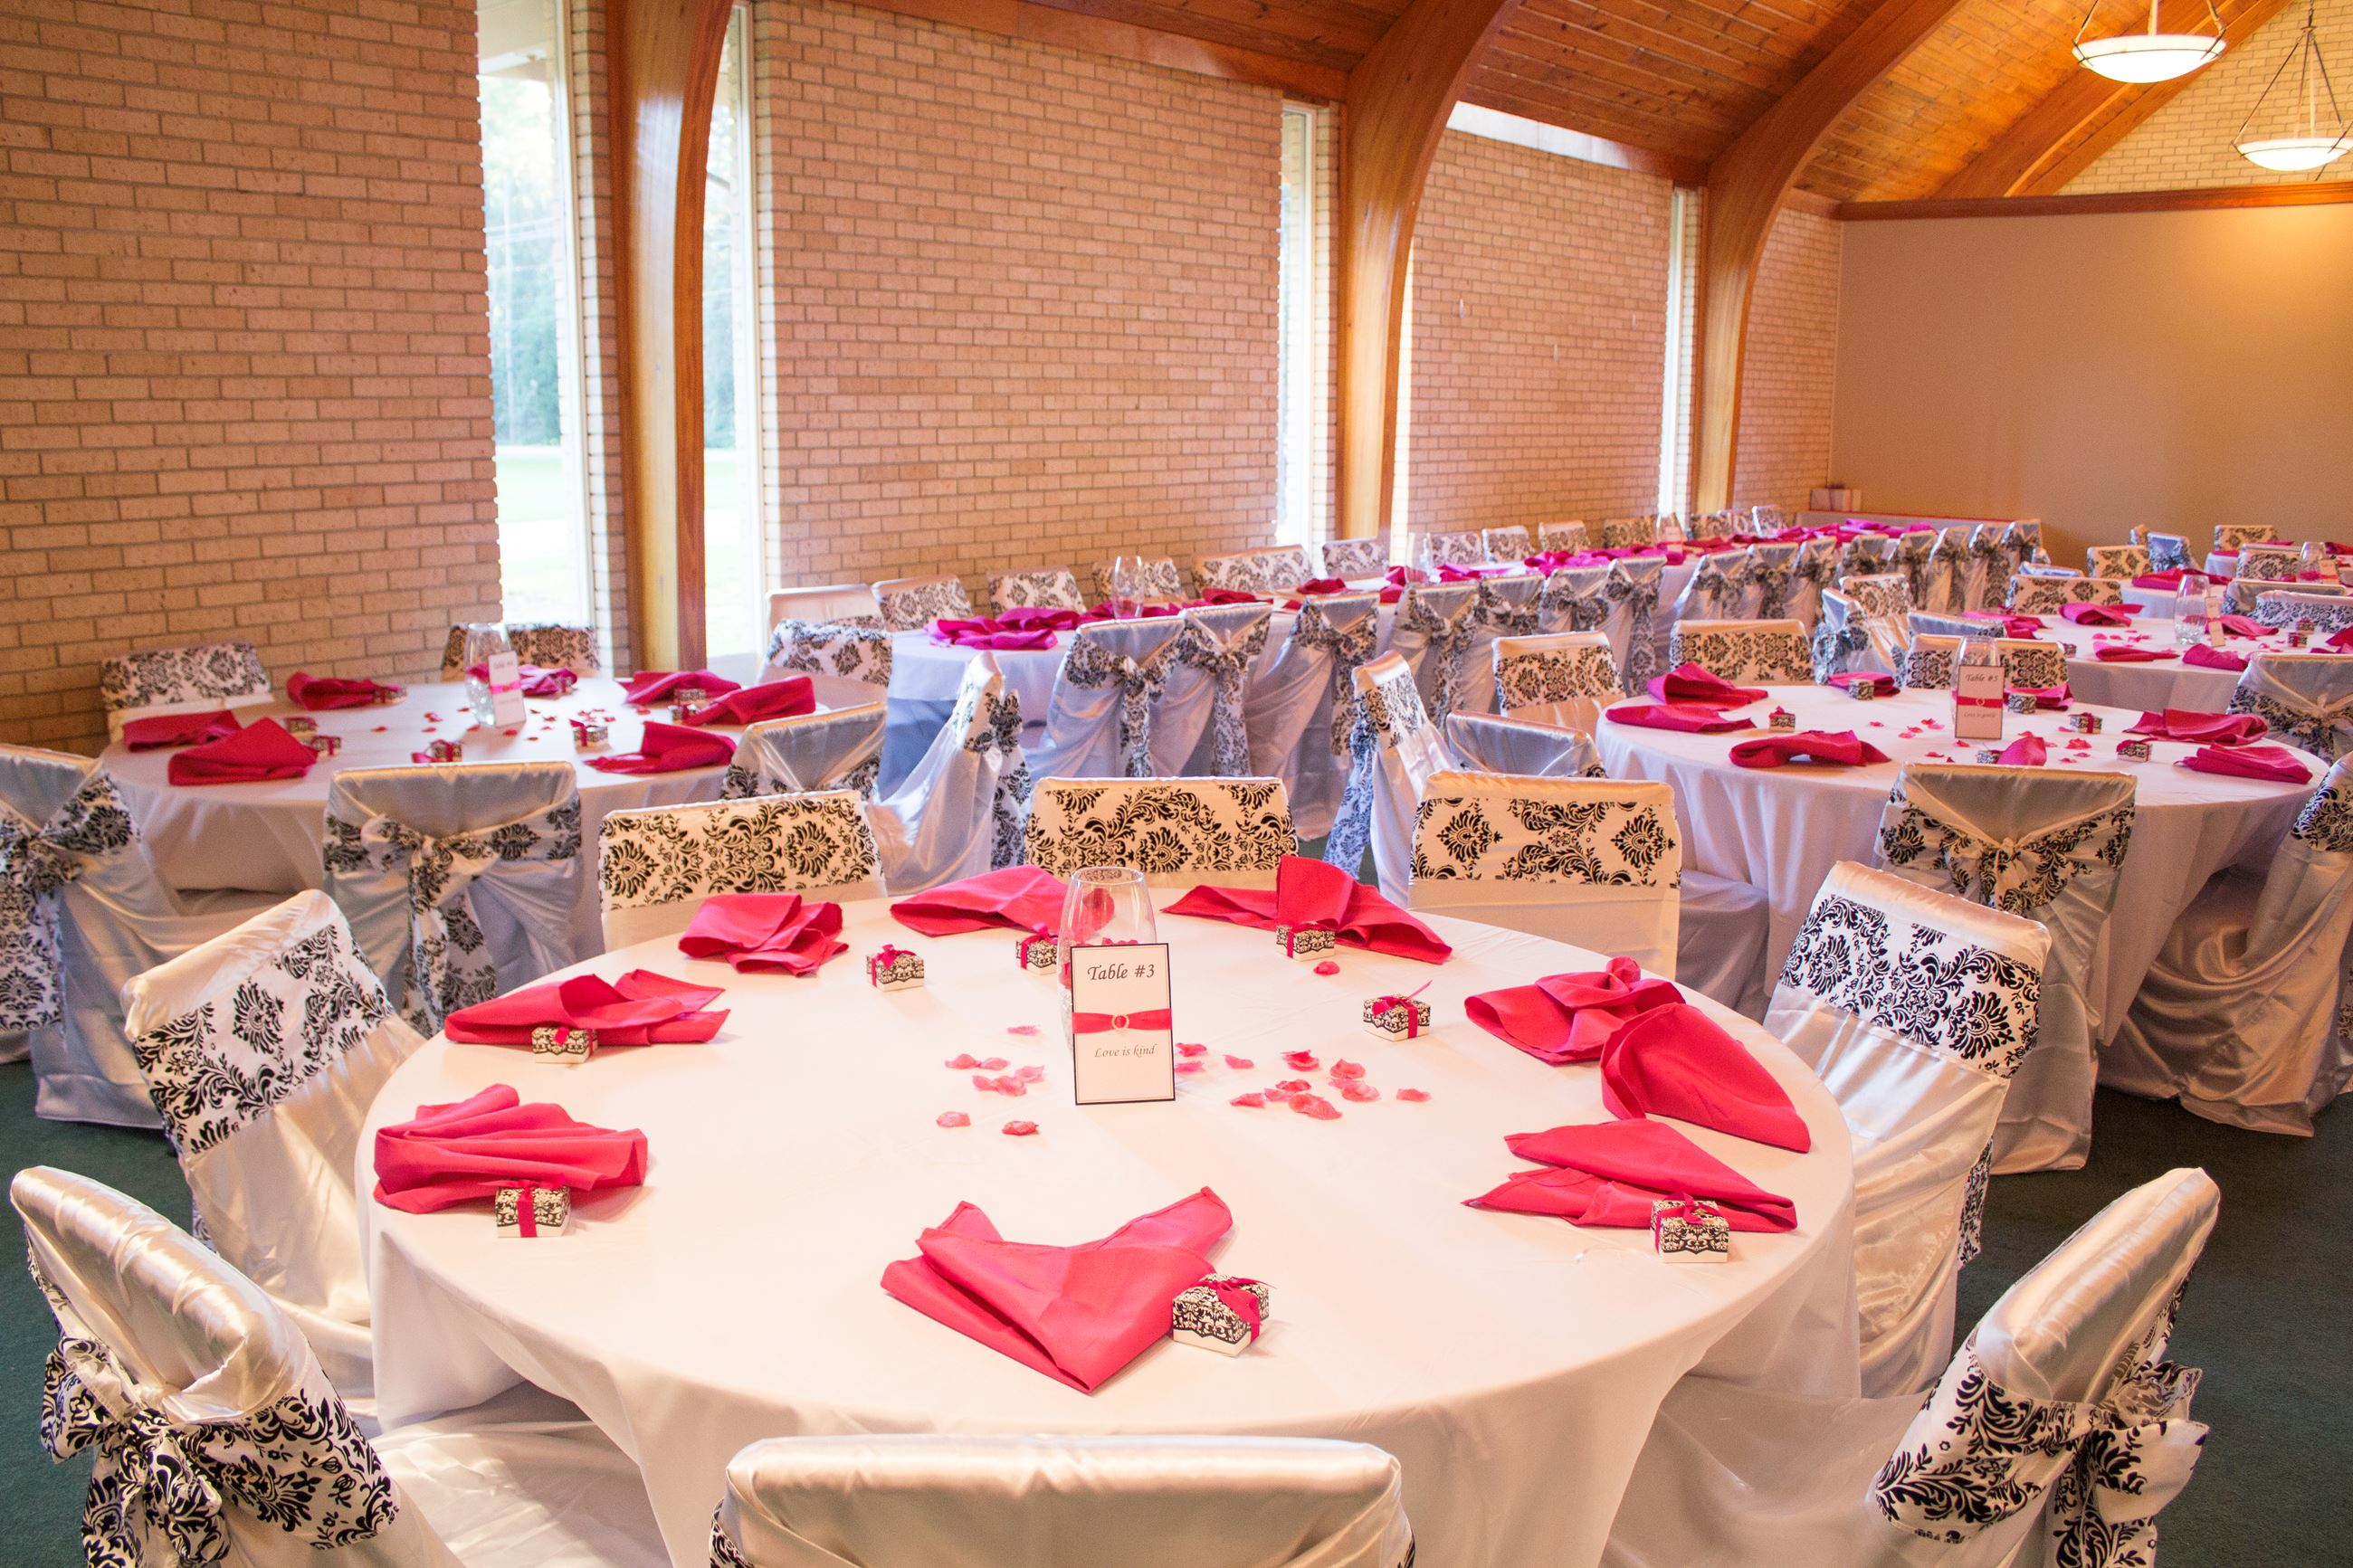 An image of a church sanctuary decorated for wedding reception